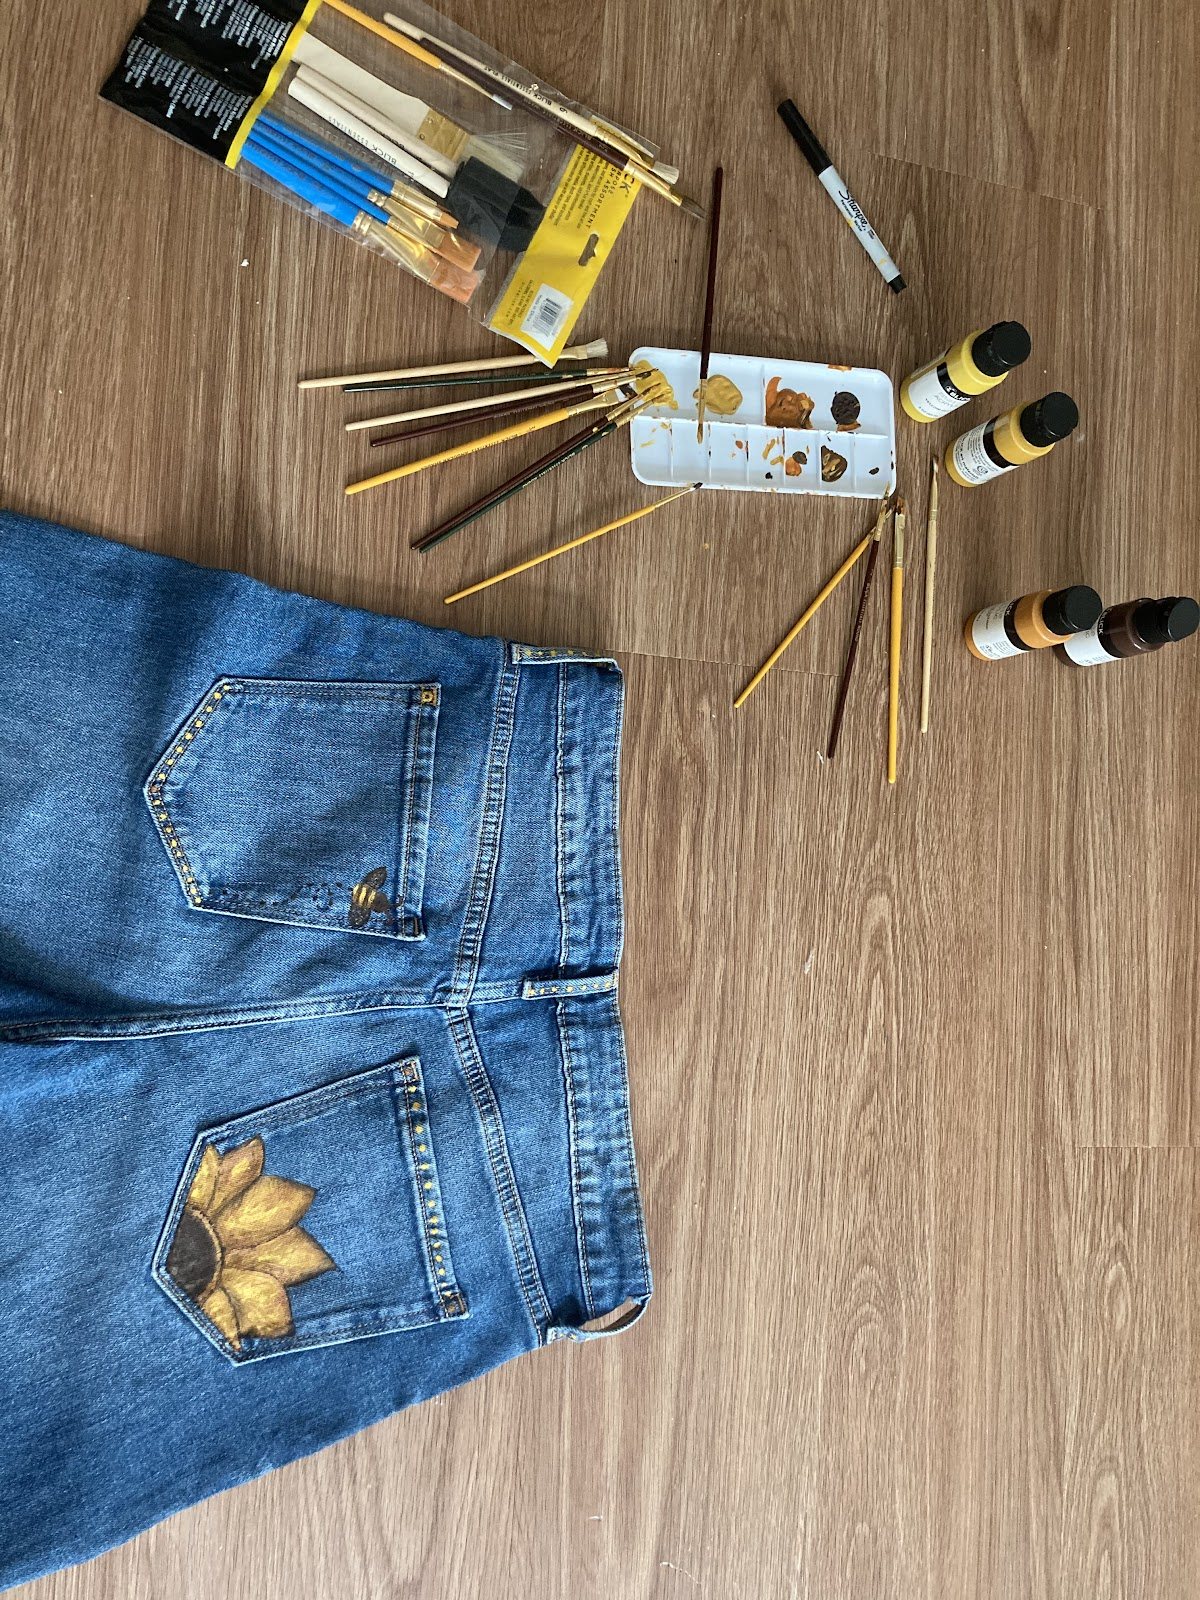 Photo of jeans with sunflowers painted on the back pockets. Yellow, orange, and brown paint bottles with paint brushes and painter palletlay next to the jeans.